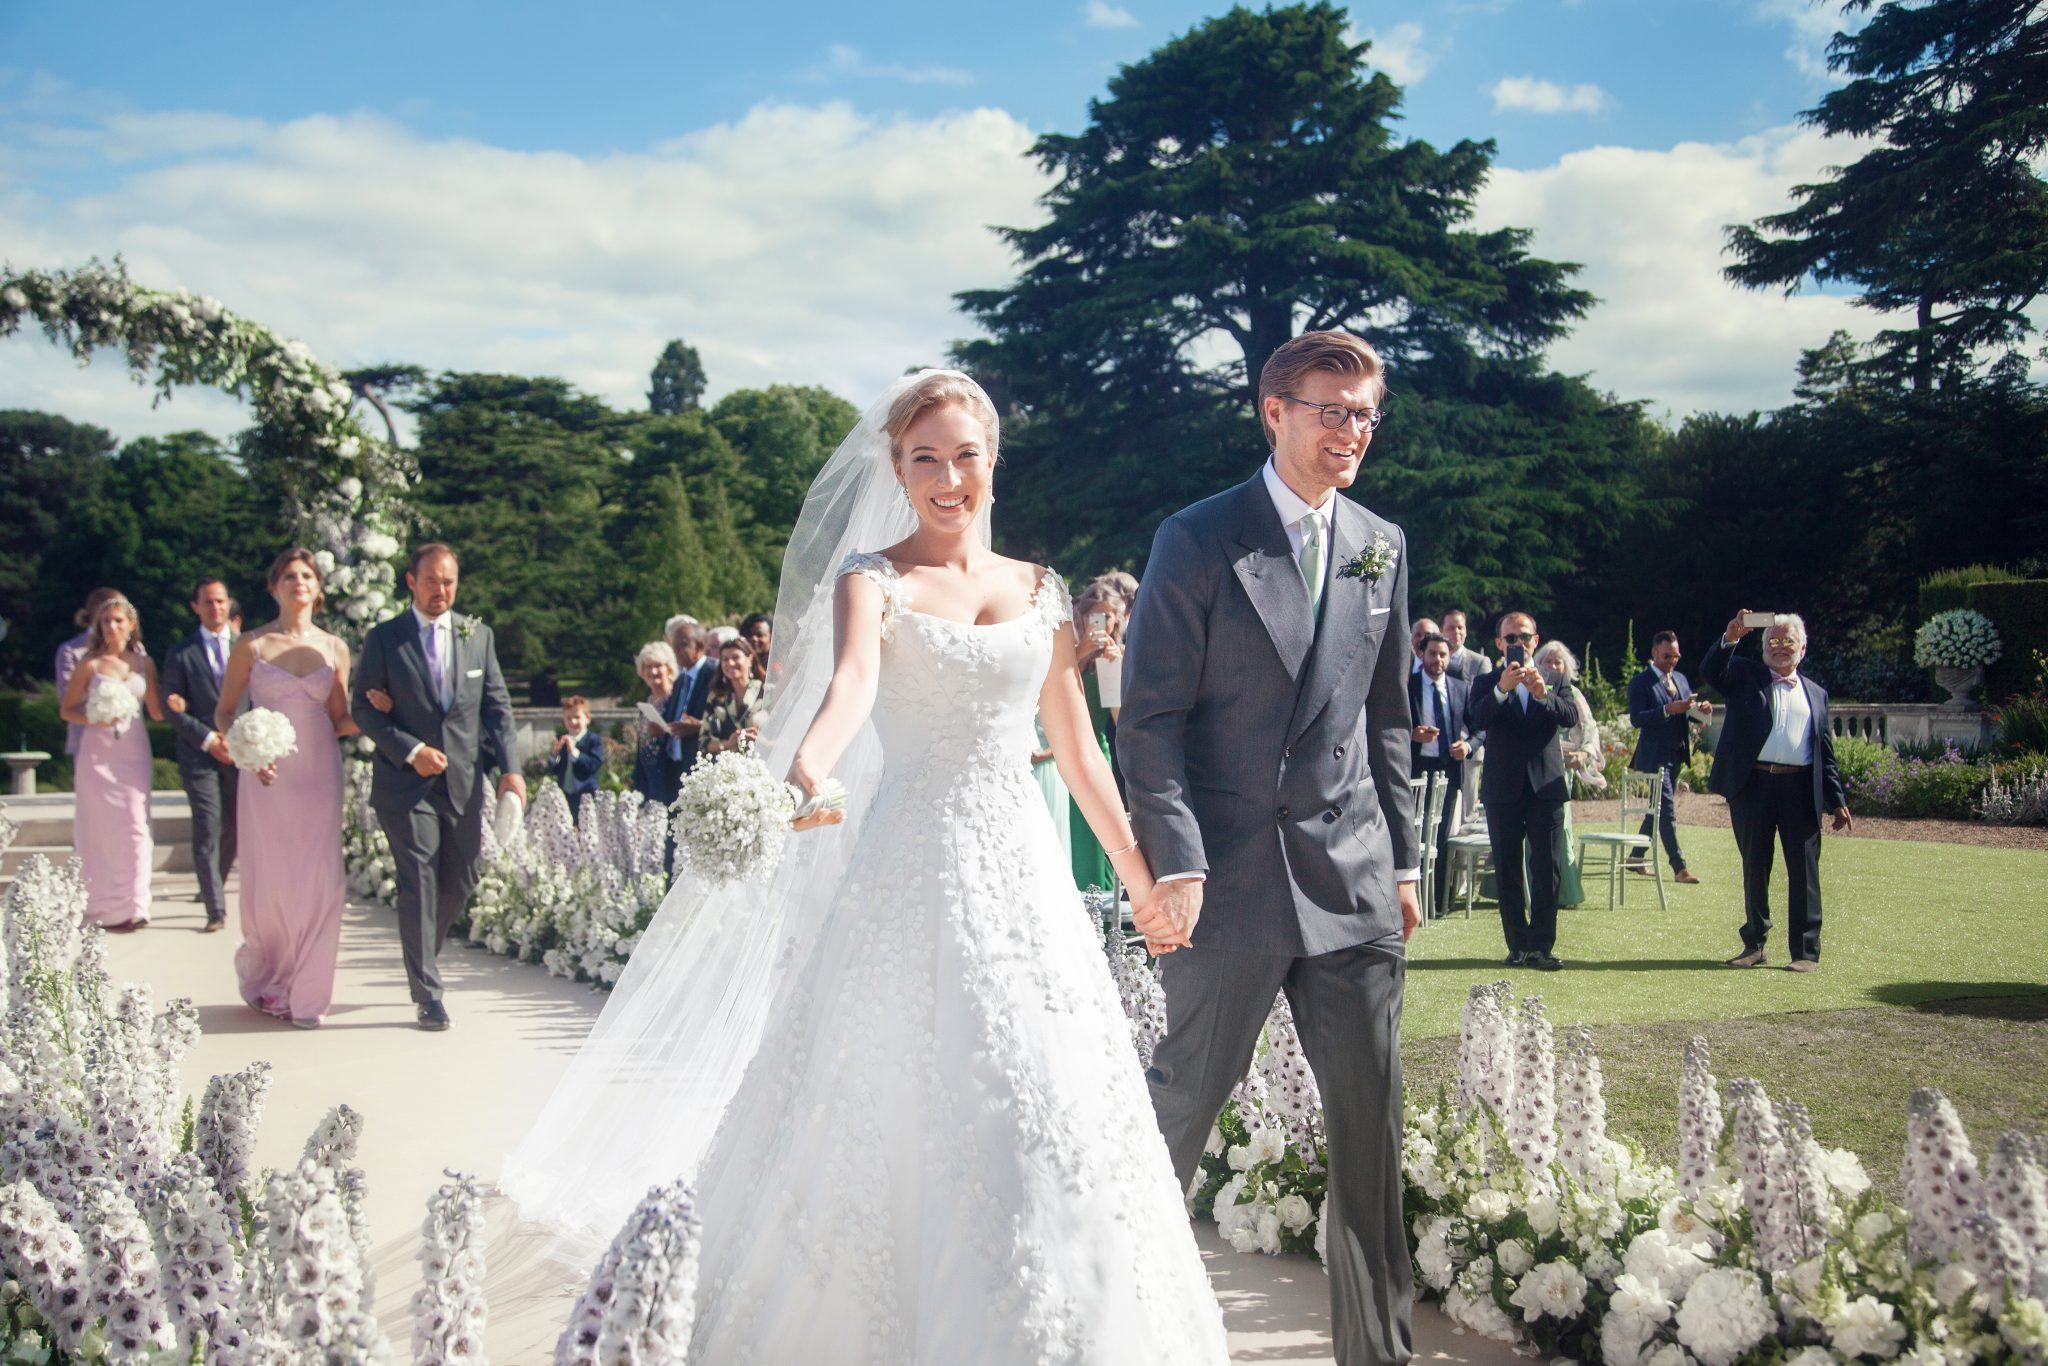 Phillipa Lepley - Lily of the Valley Wedding Dress with applique veil